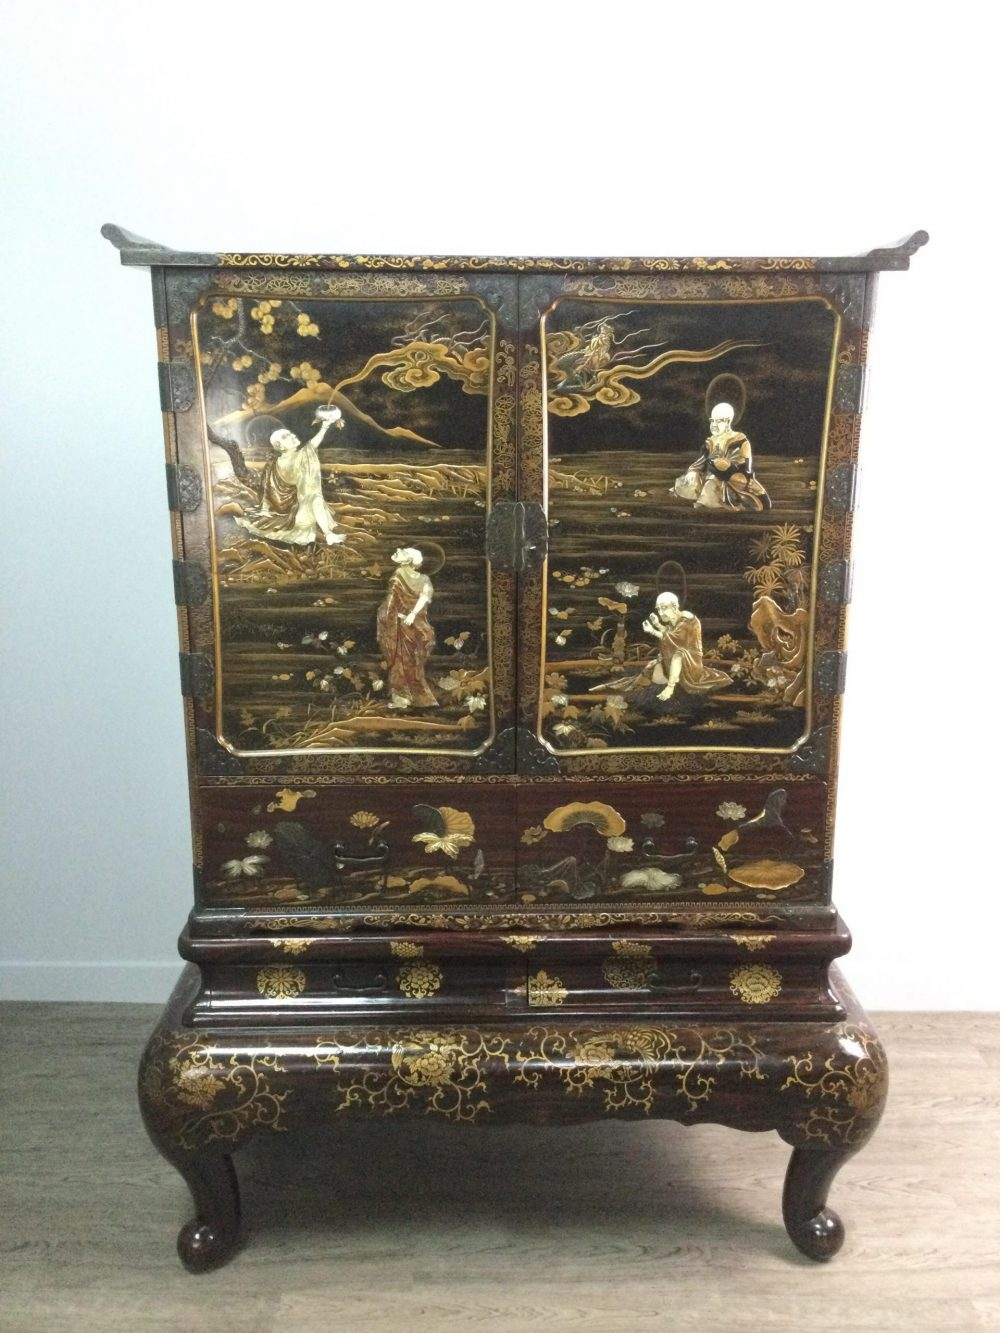 Japanese lacquered and Shibayama cabinet valued at £2,000 - Business News Scotland